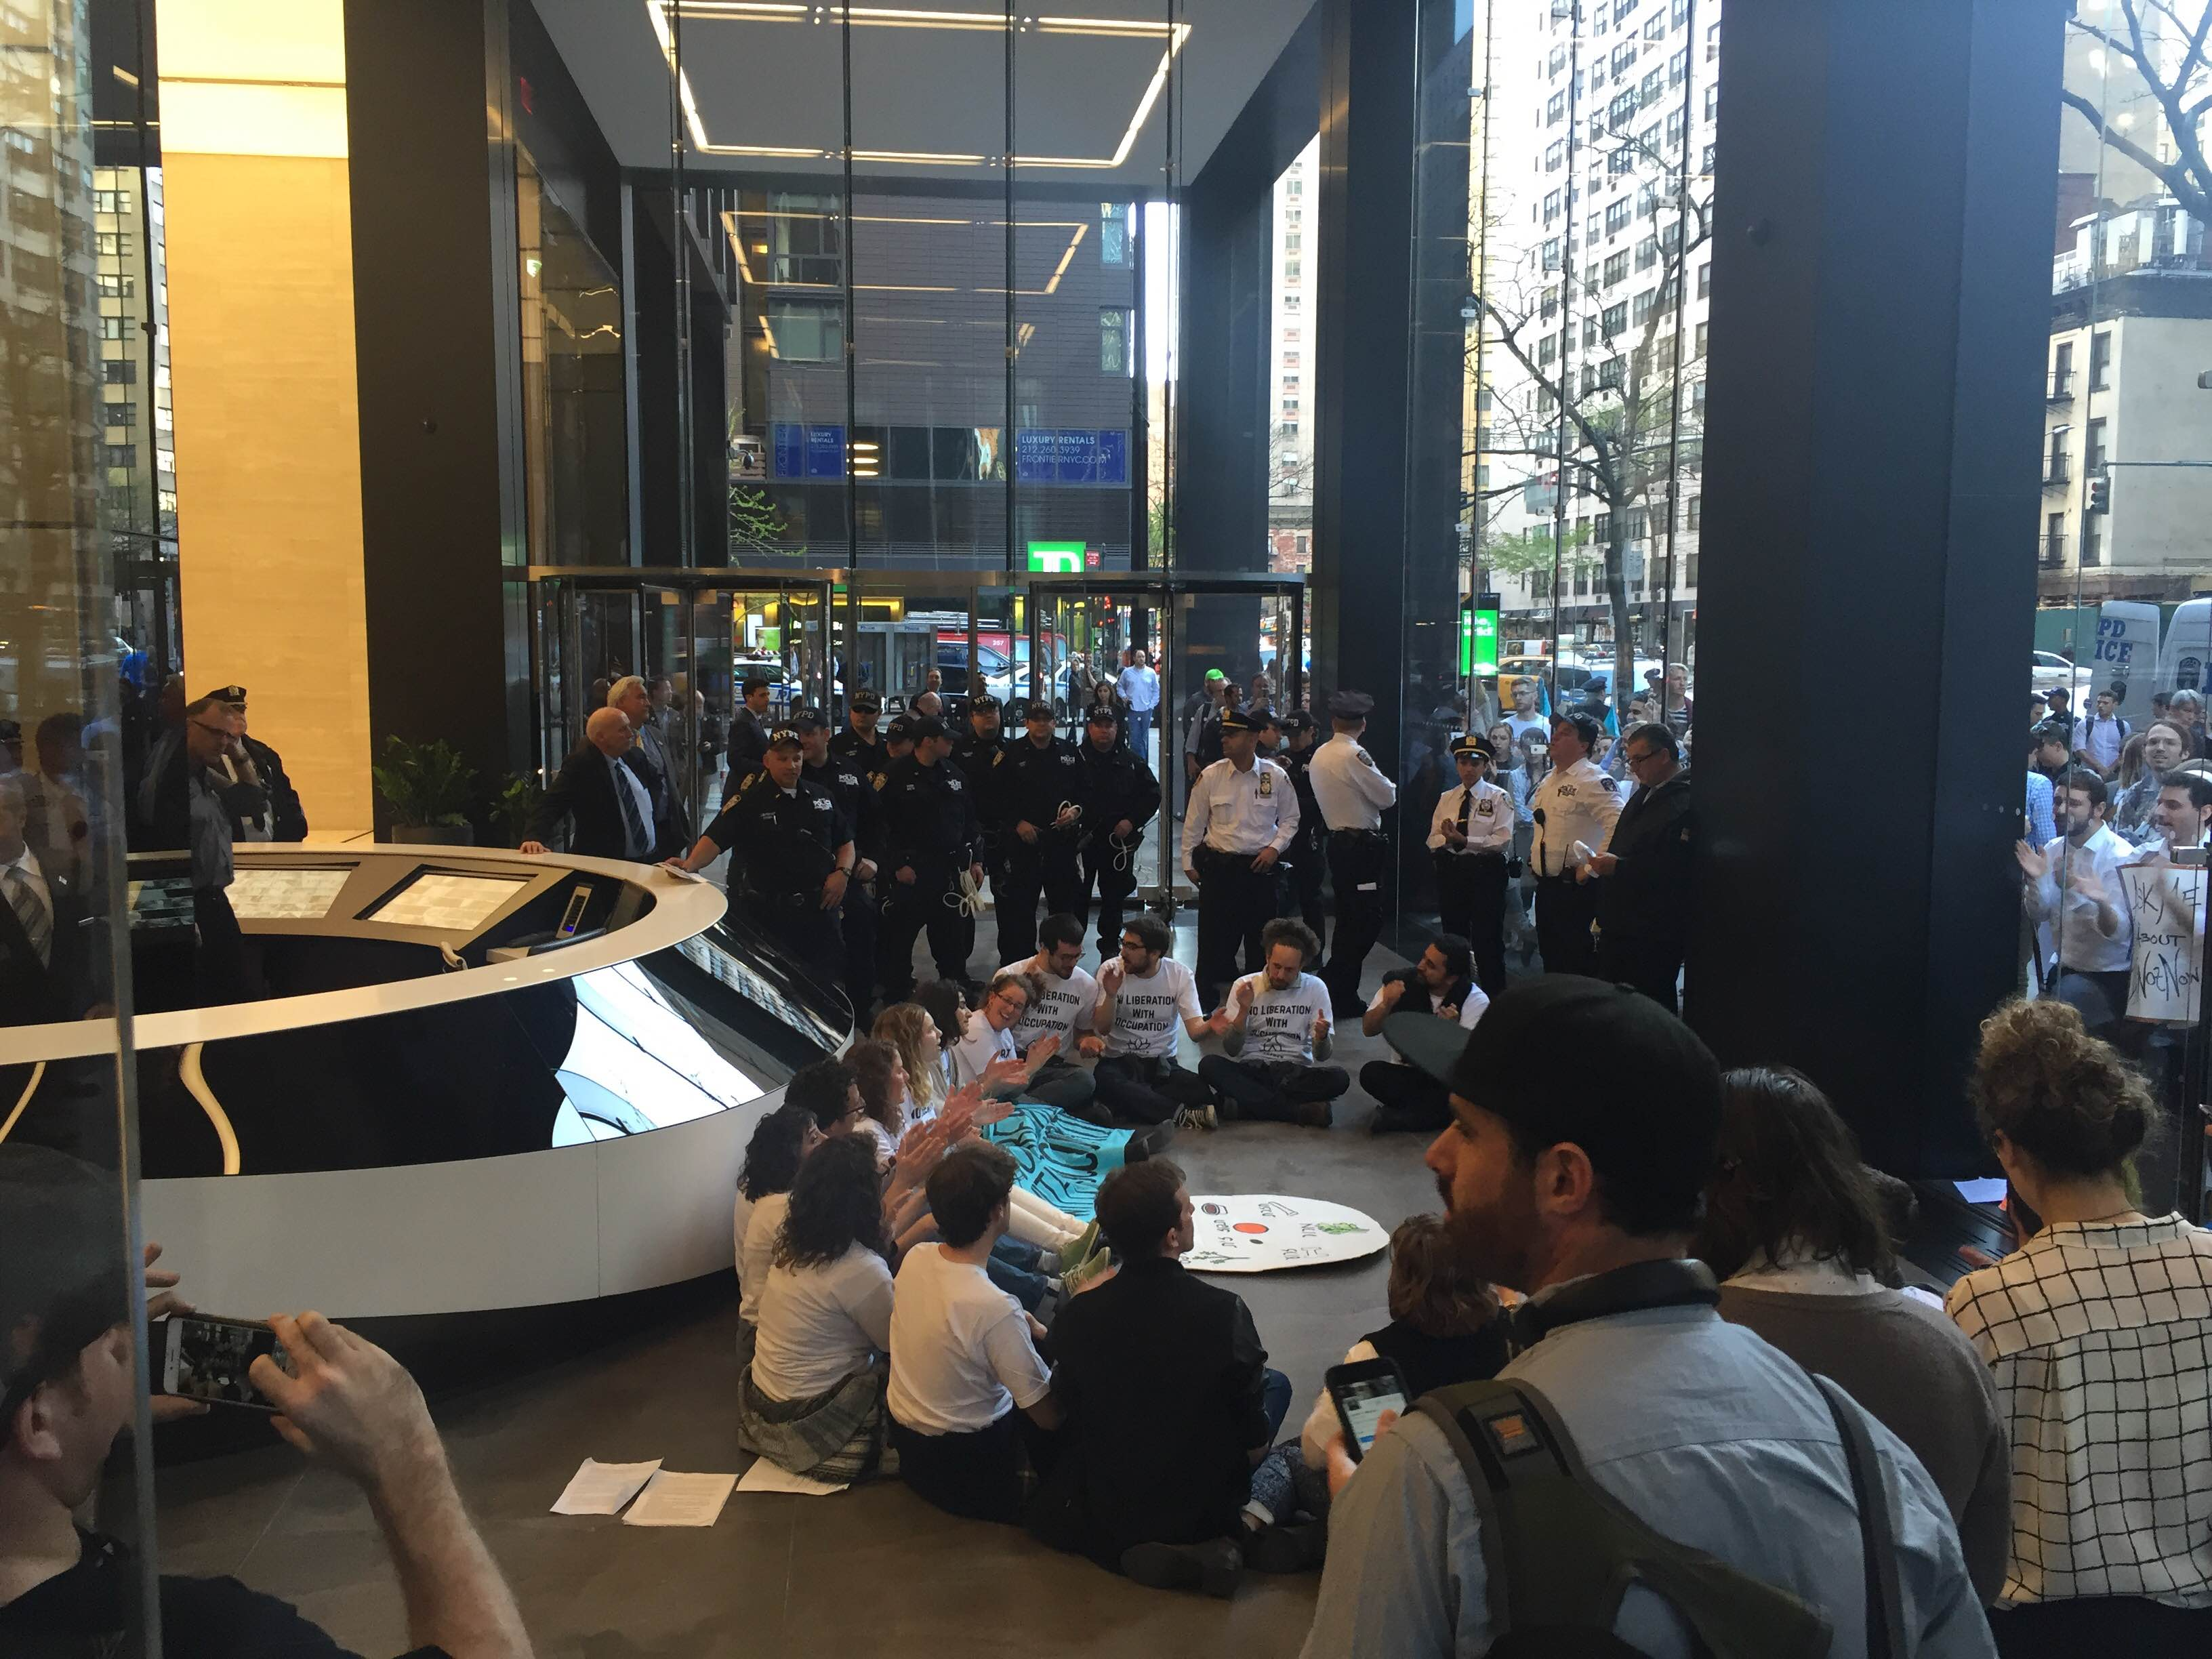 NYPD look on as activists occupy the lobby of the ADL. (Photo: Zac Rudge)